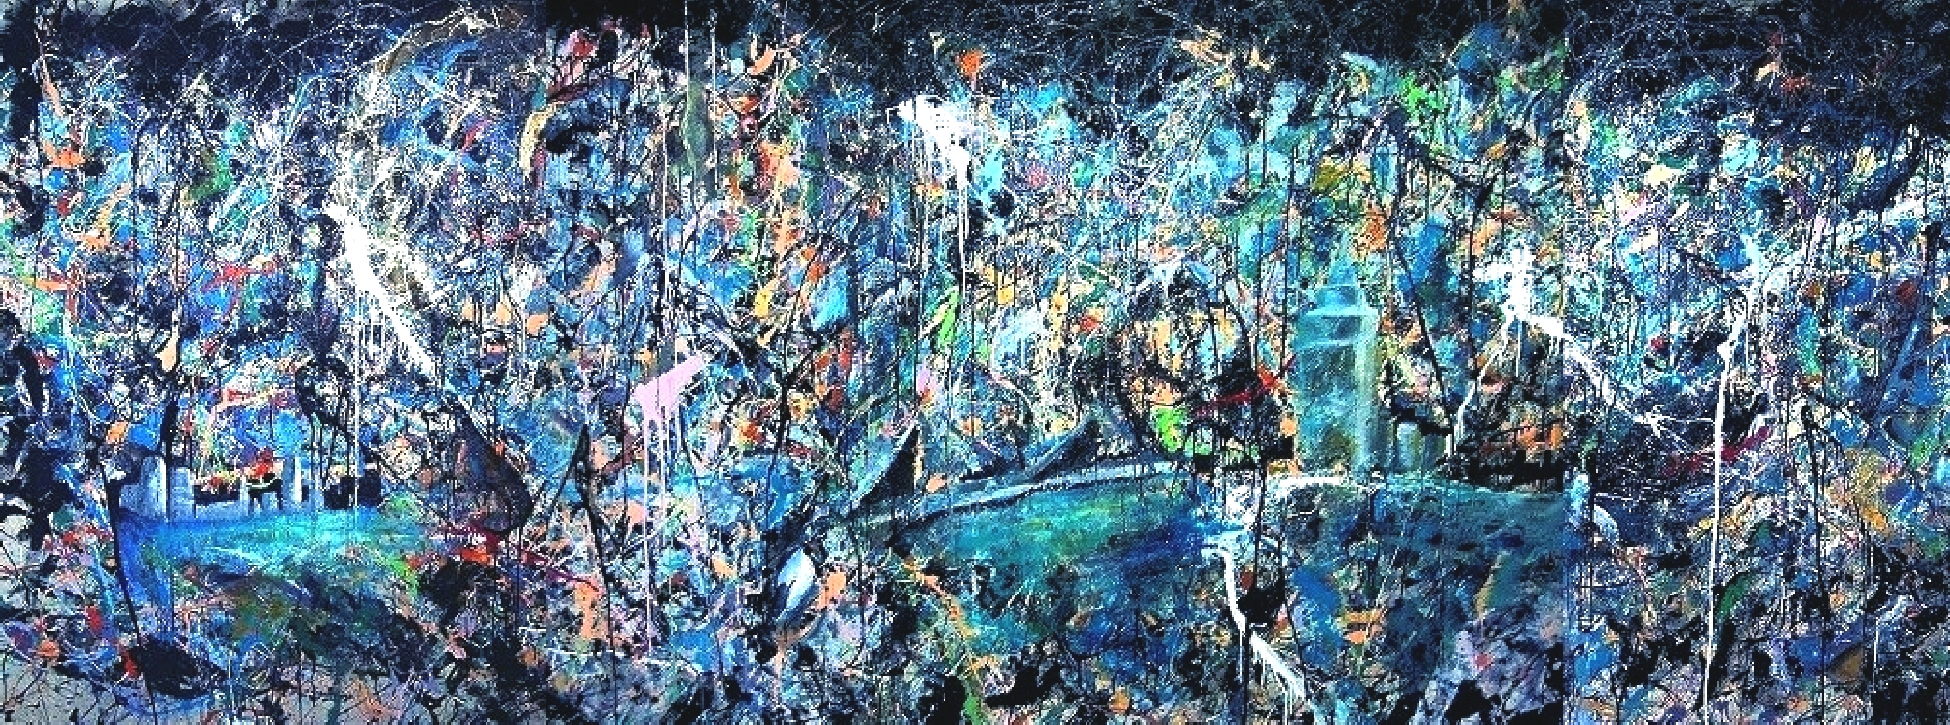 Its Not Dark Yet artwork by Steve Reinhart - art listed for sale on Artplode